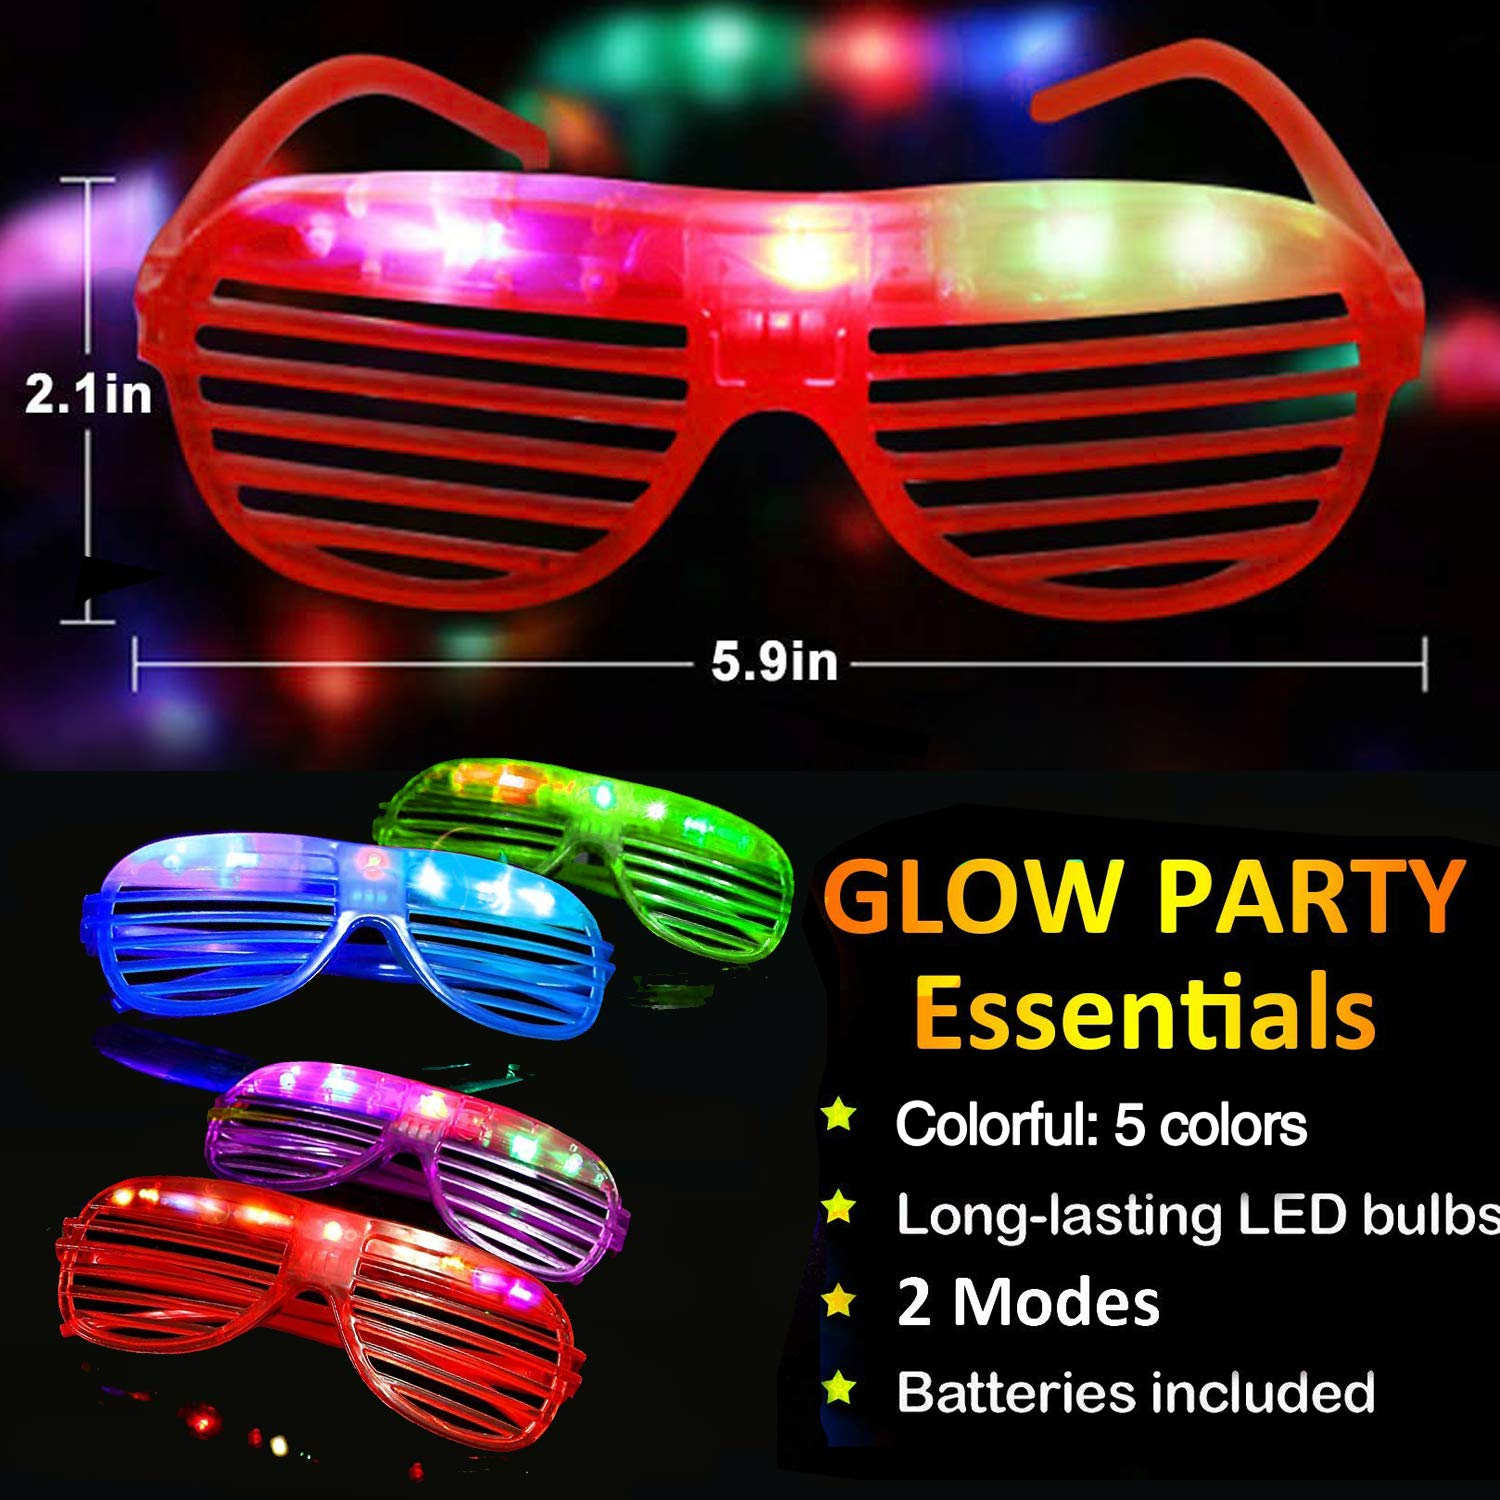 20 Pack Party Favors LED Light Up Glasses Glow in The Dark Party Supplies Toys Flashing Glasses Neon Shutter DJ SunGlasses Parties Decorations Holiday Birthday Gifts for Adult Kids by CHARMCZ (Image #1)